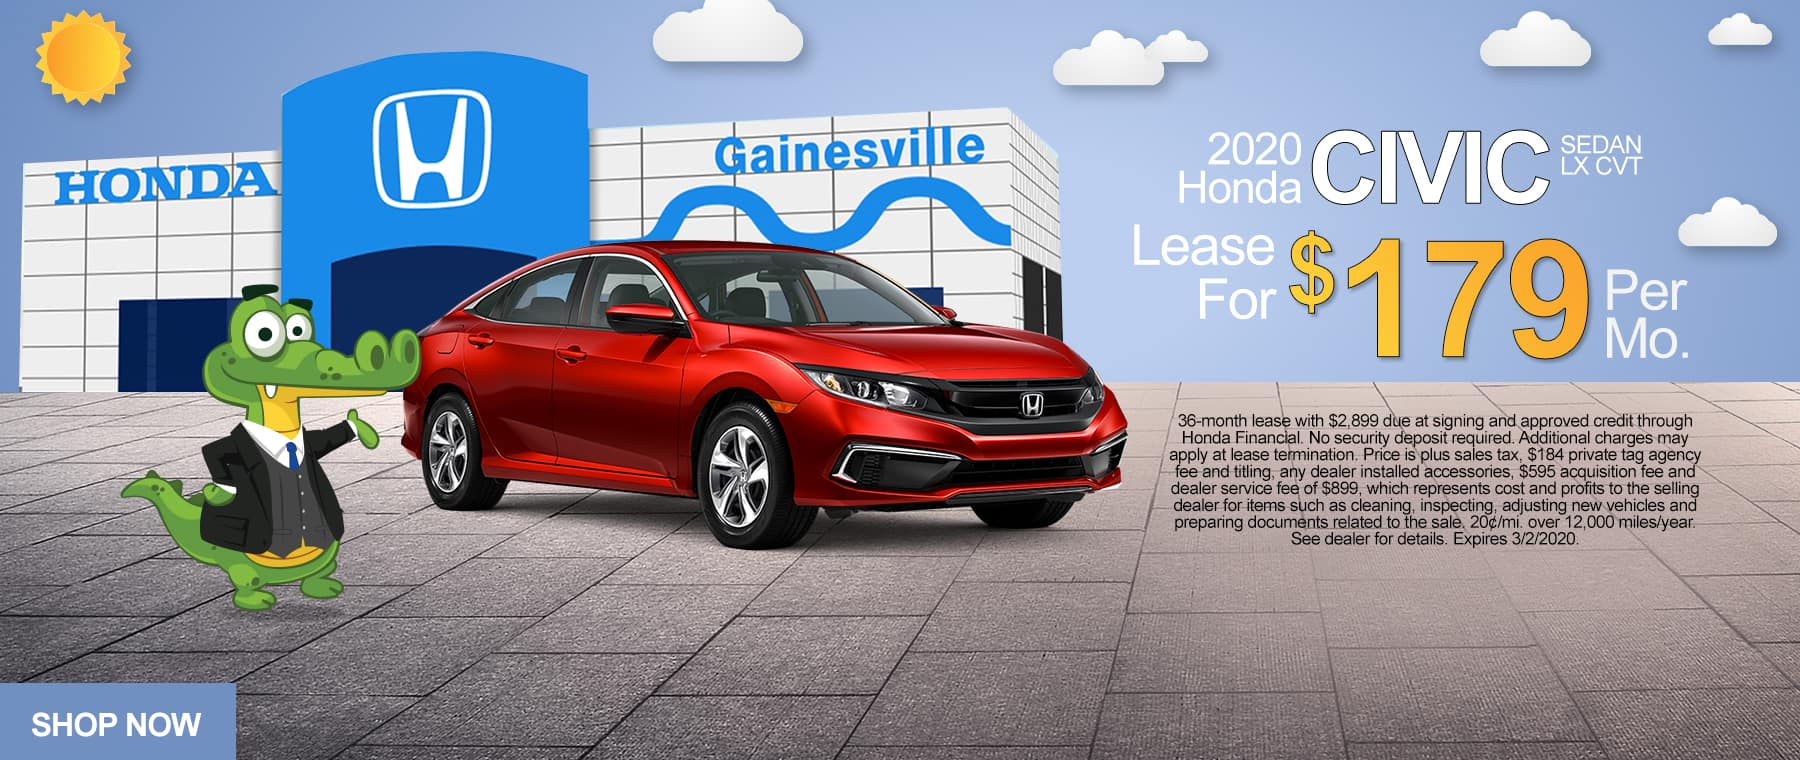 2020 Honda Civic Sedan LX CVT | Lease For $179 Per Month